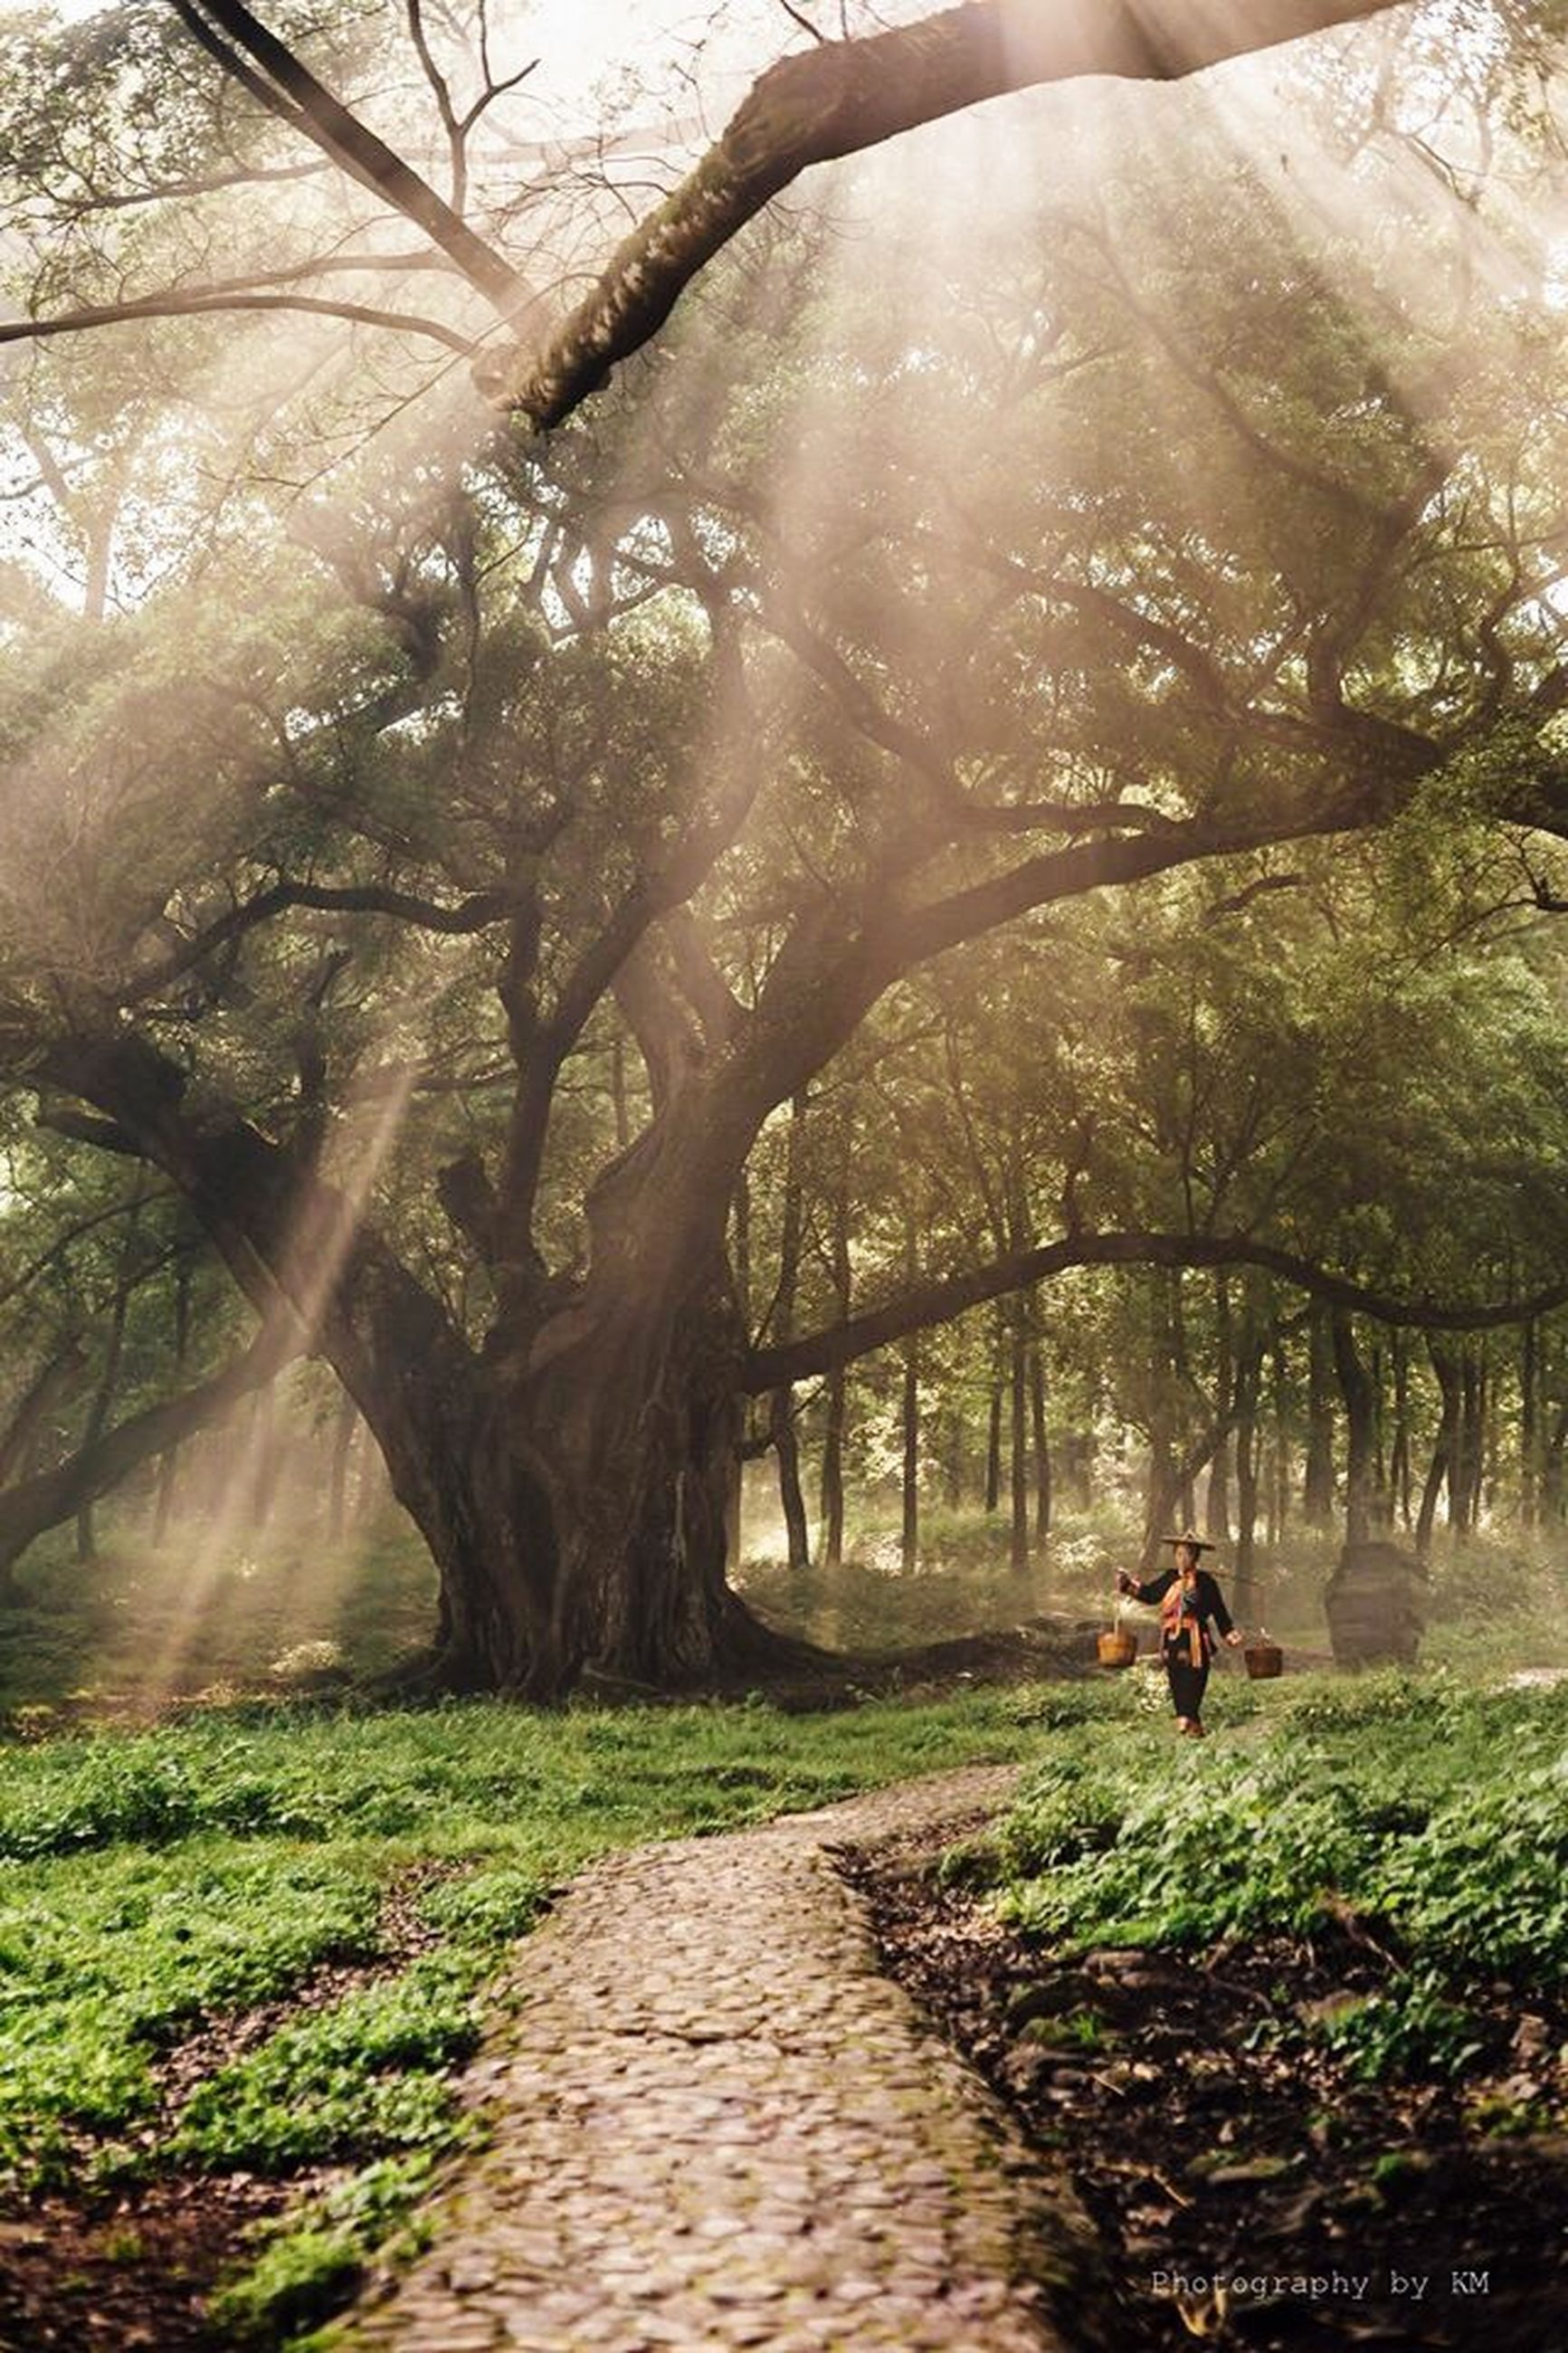 tree, the way forward, footpath, lifestyles, leisure activity, men, person, pathway, growth, walking, park - man made space, grass, rear view, walkway, nature, branch, sunlight, full length